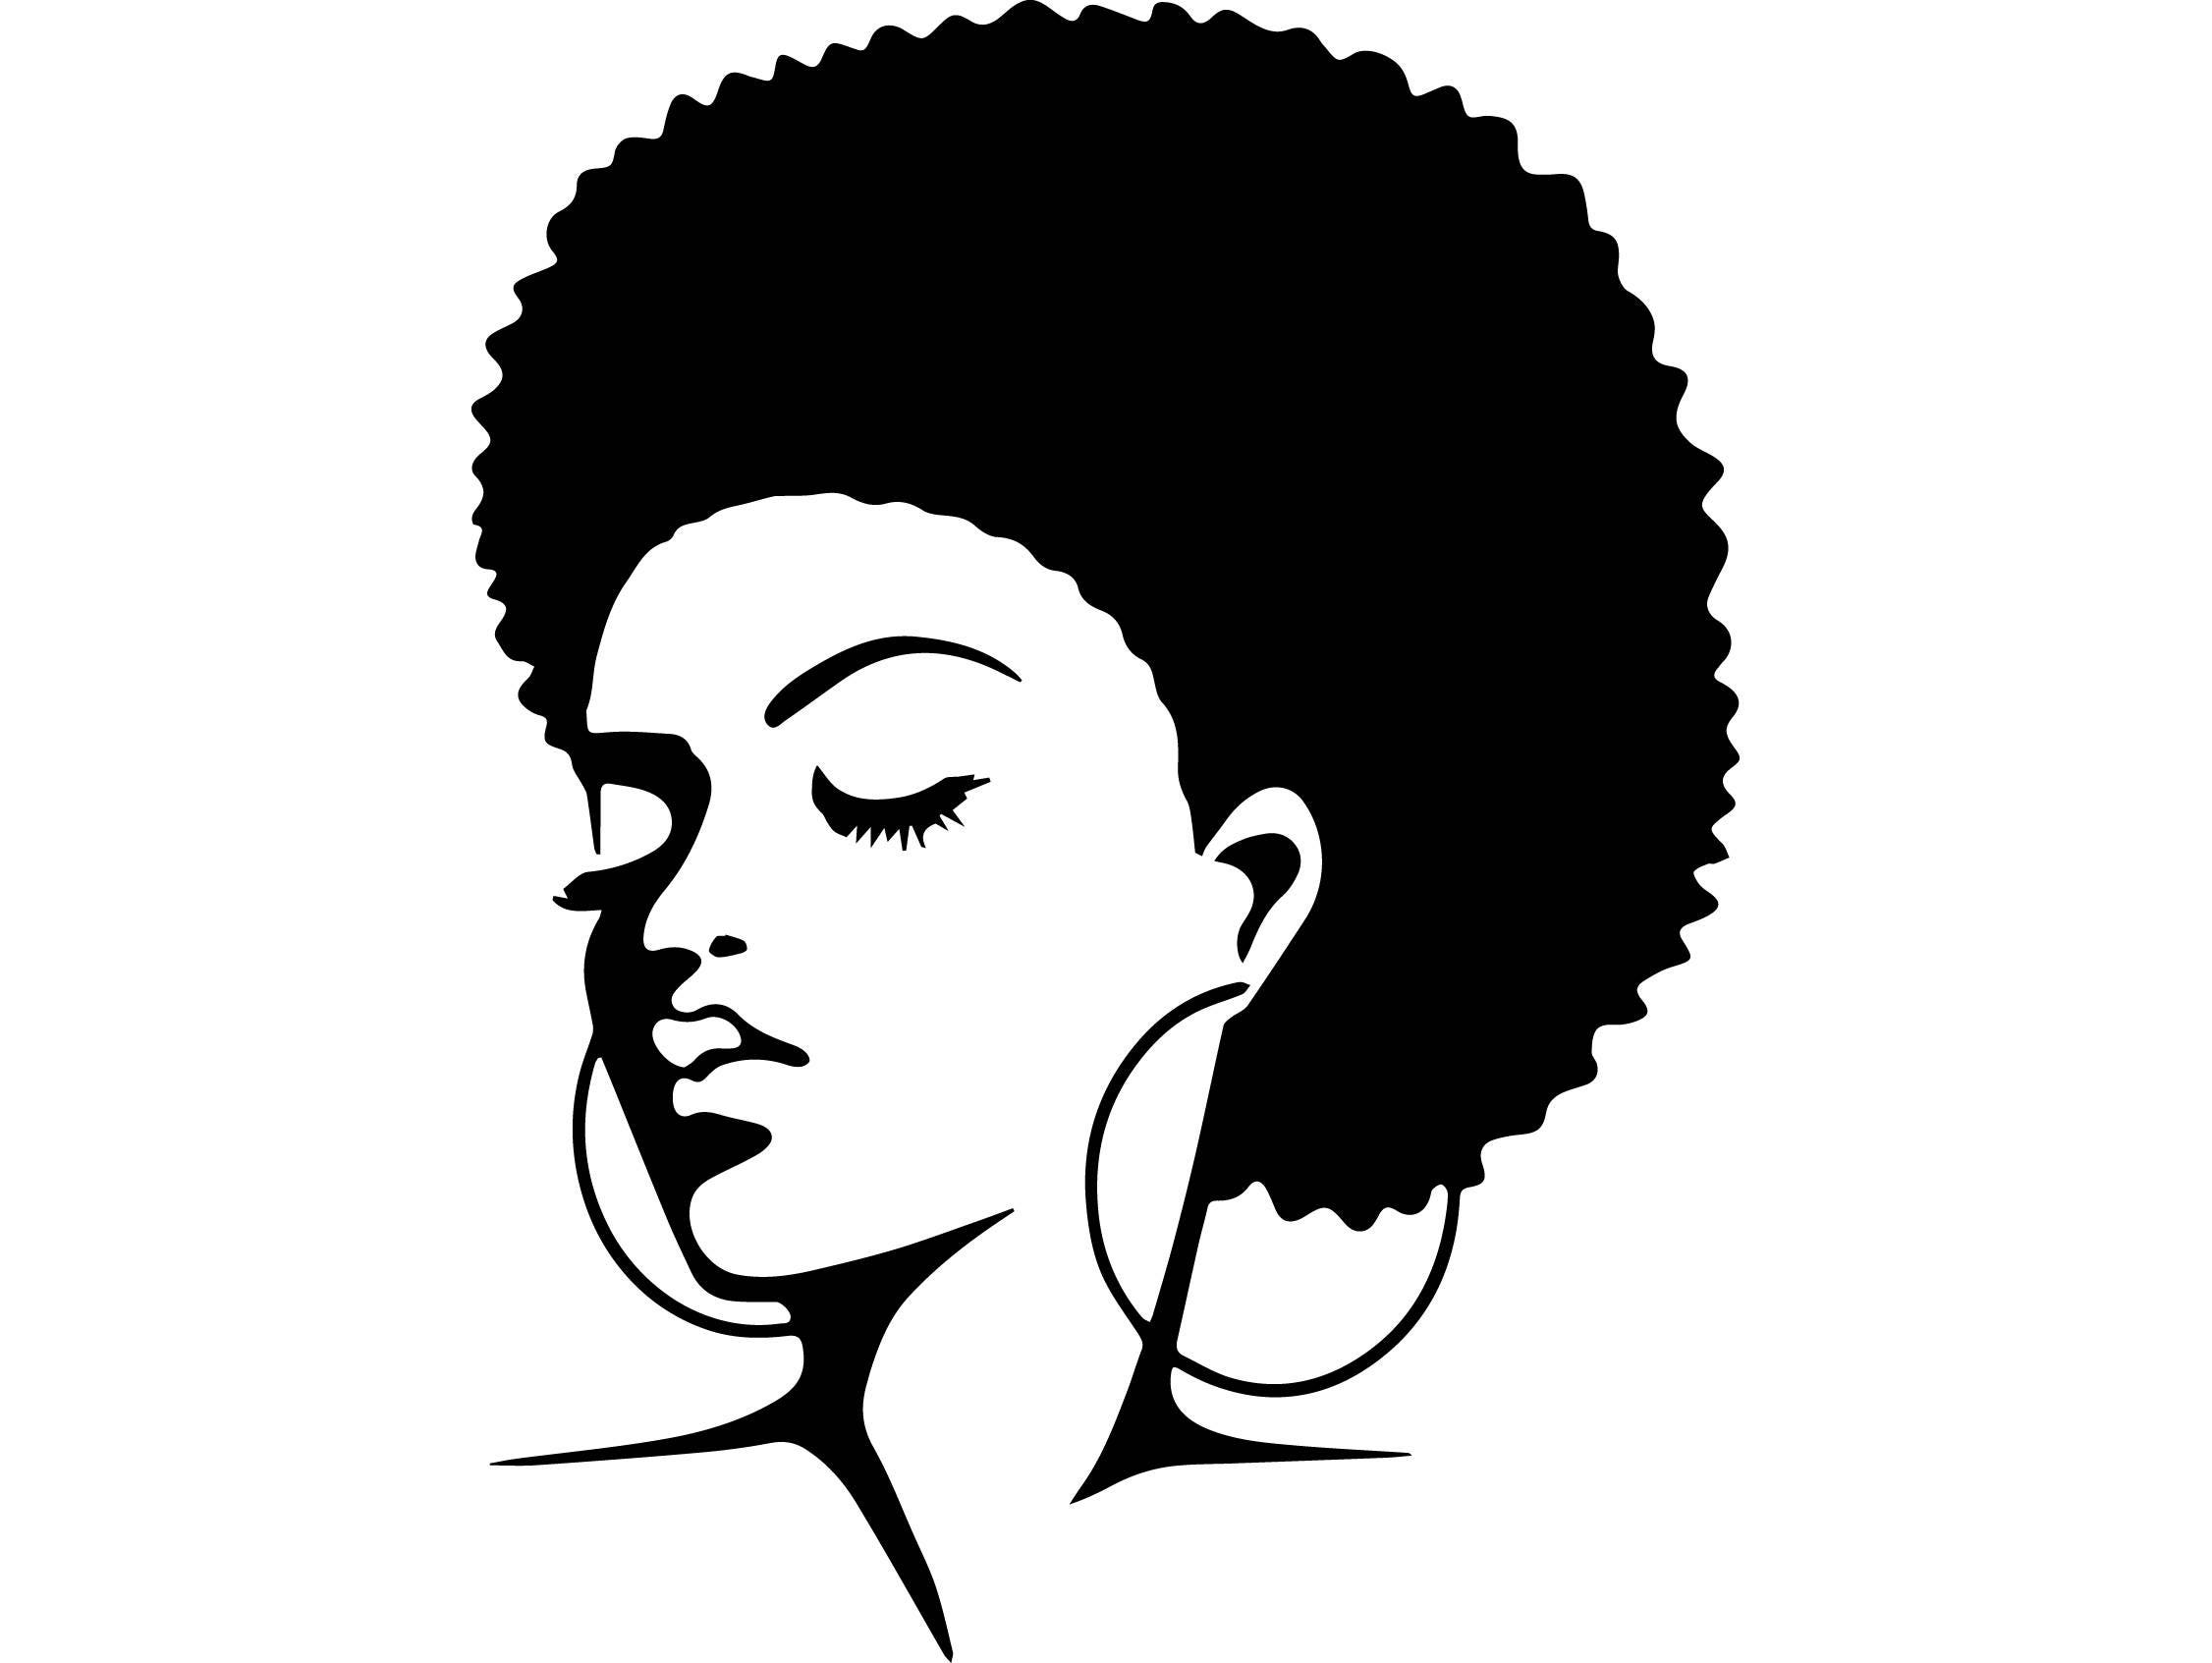 Afro Hair Vector Black Woman11 Afro Hai...